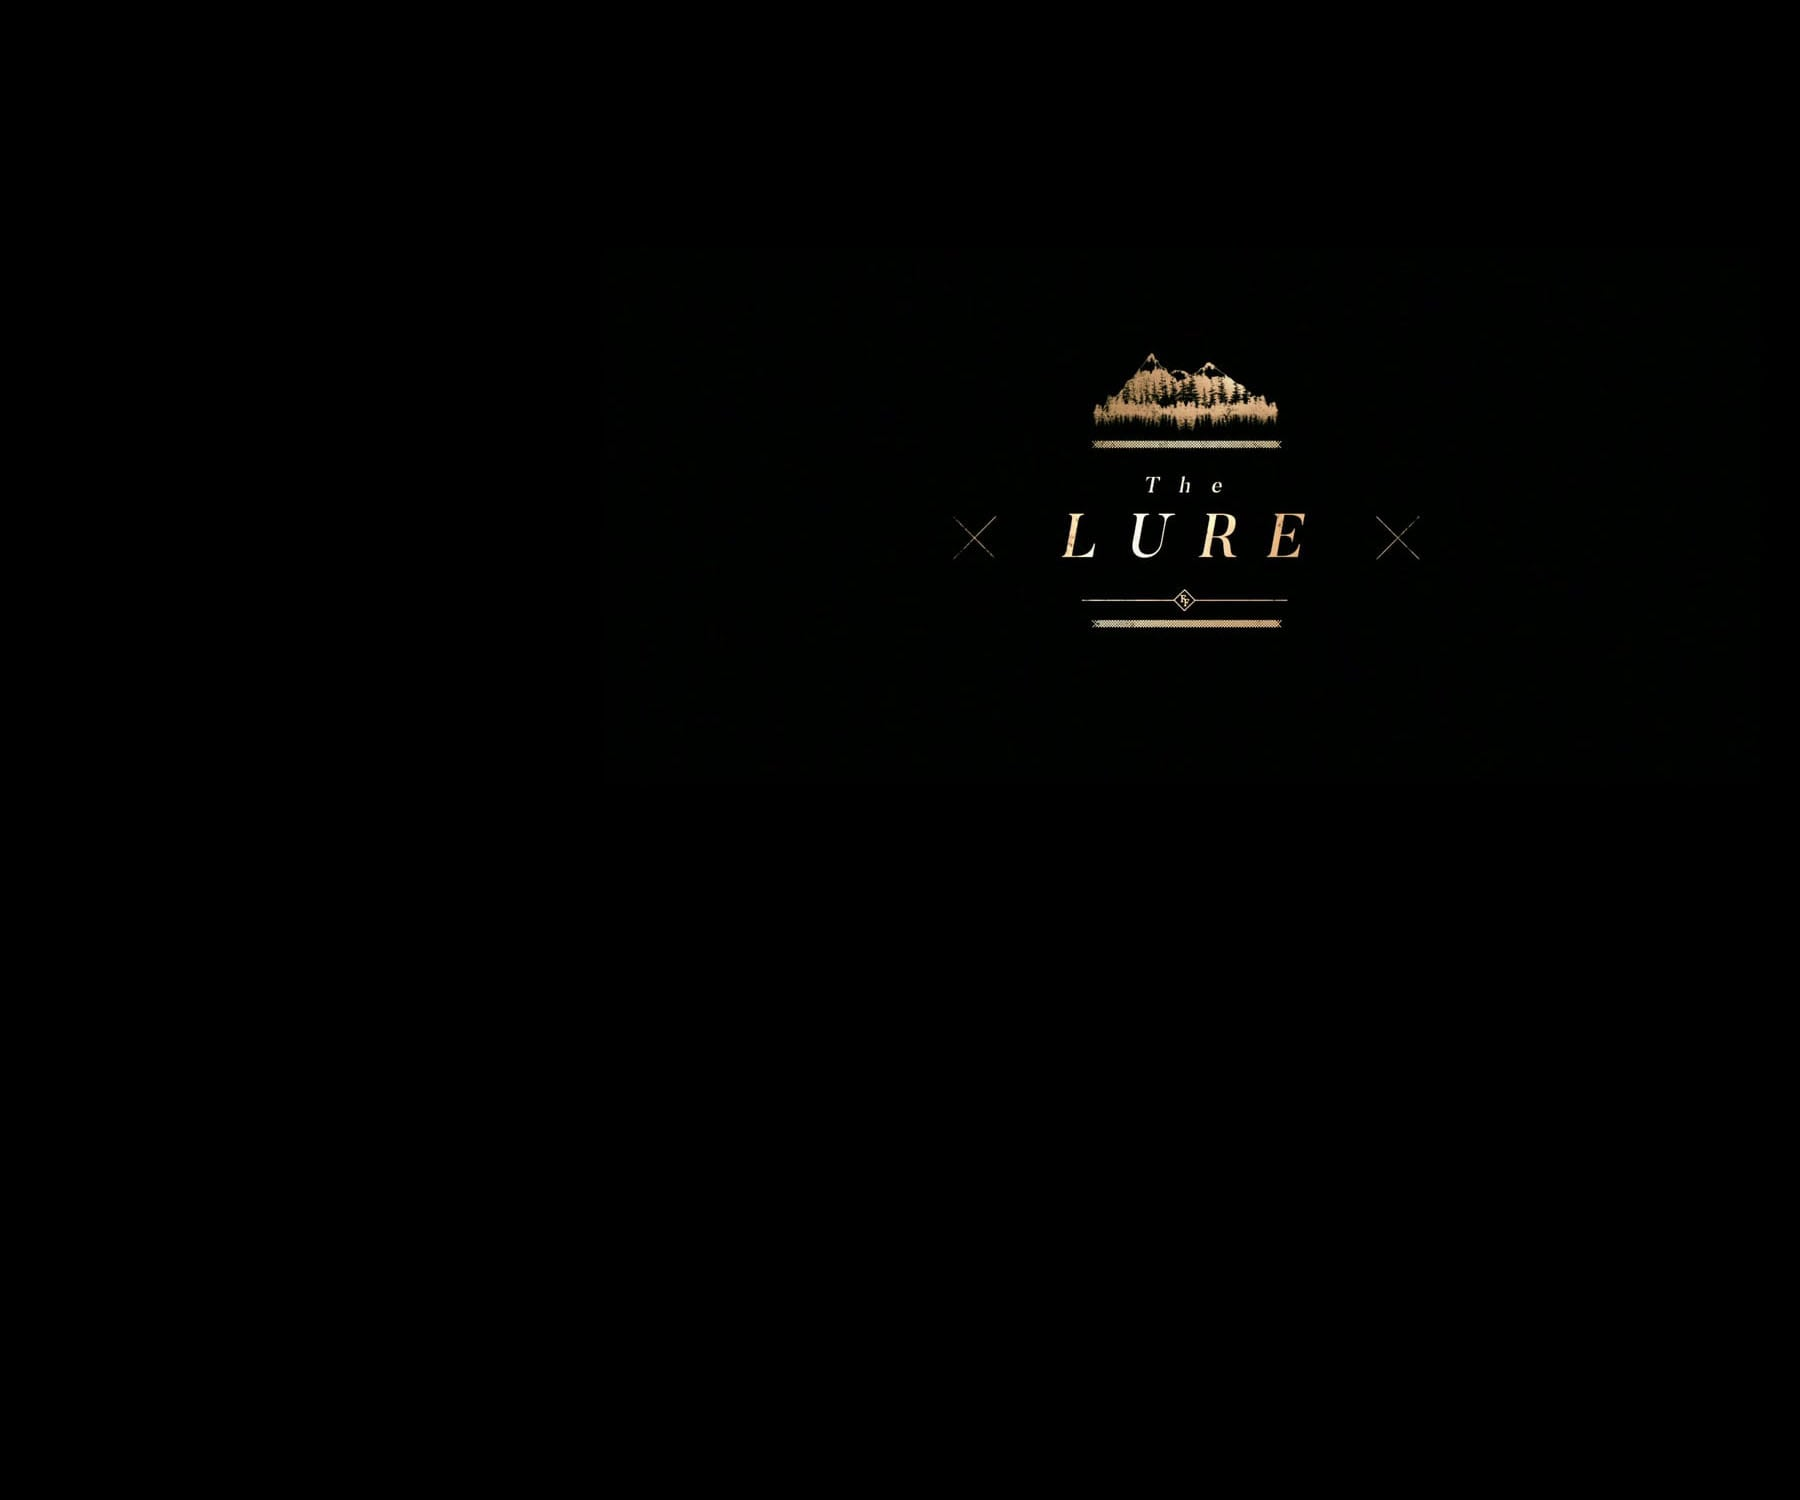 The Lure – a feature documentary by alumnus Tomas Leach